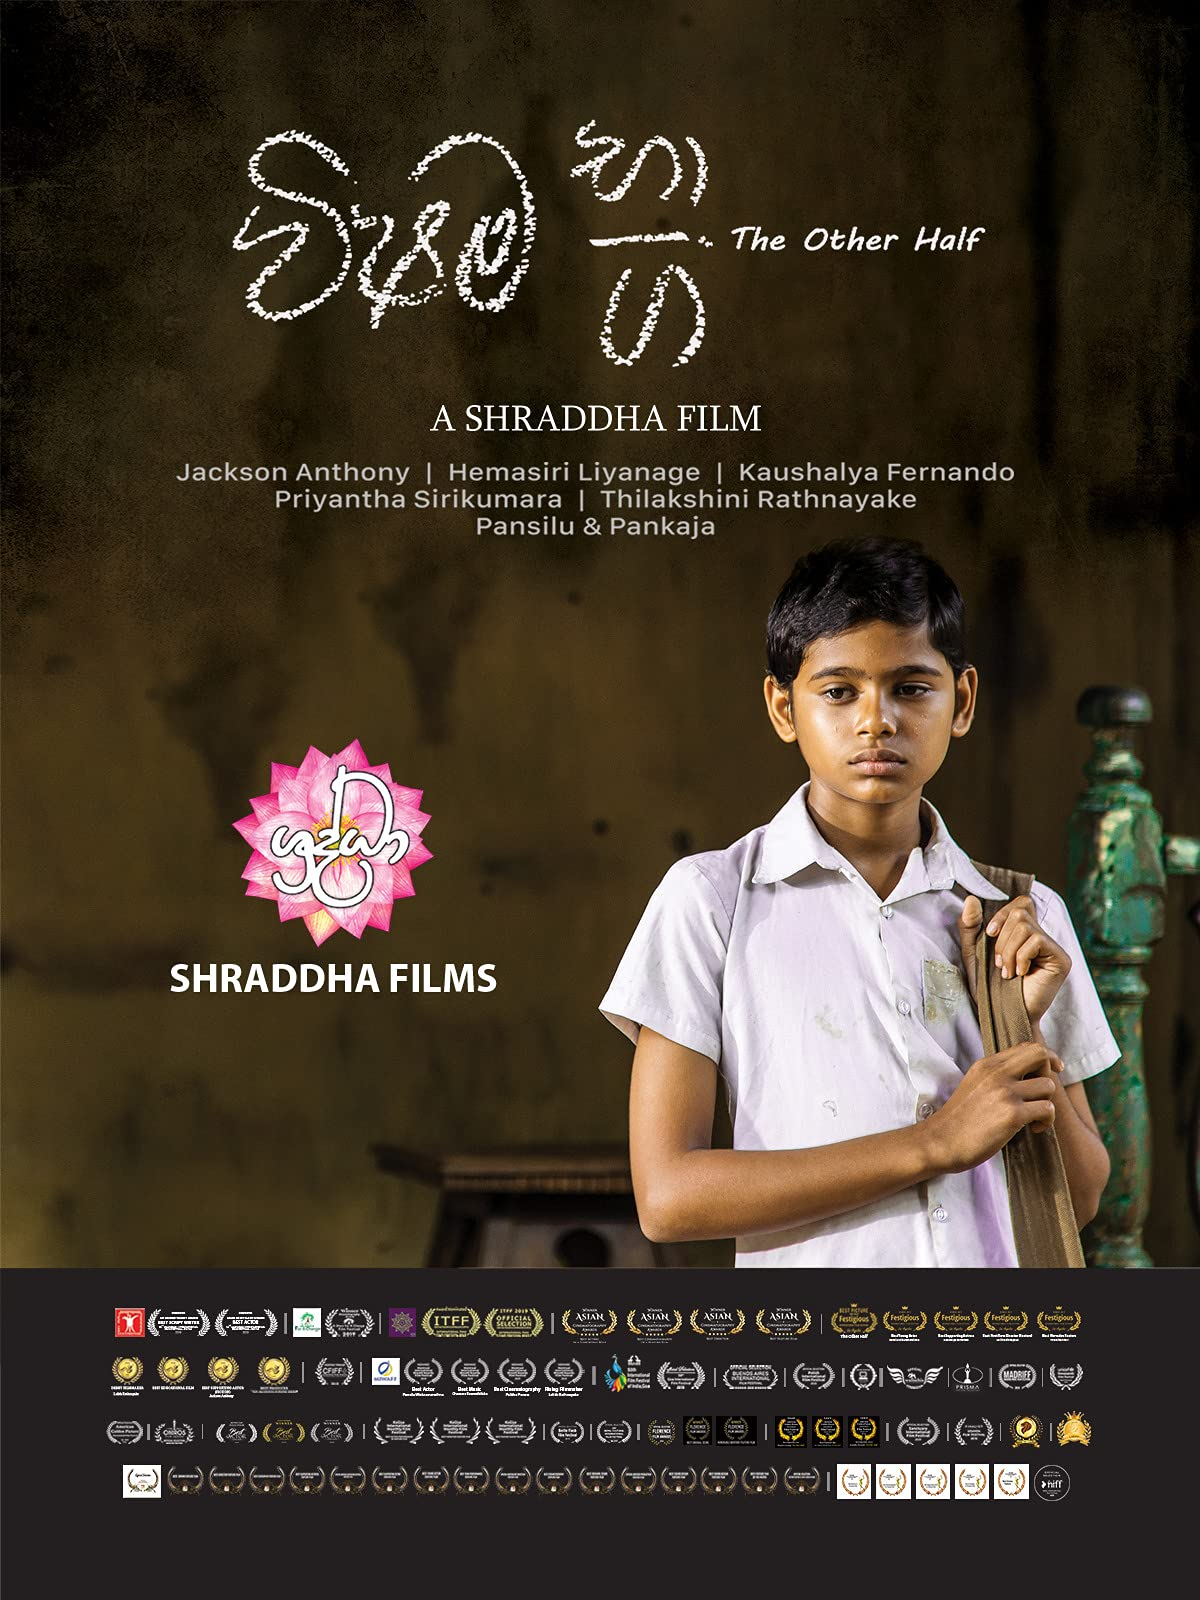 The other half - Vishama Bhaga (2019)